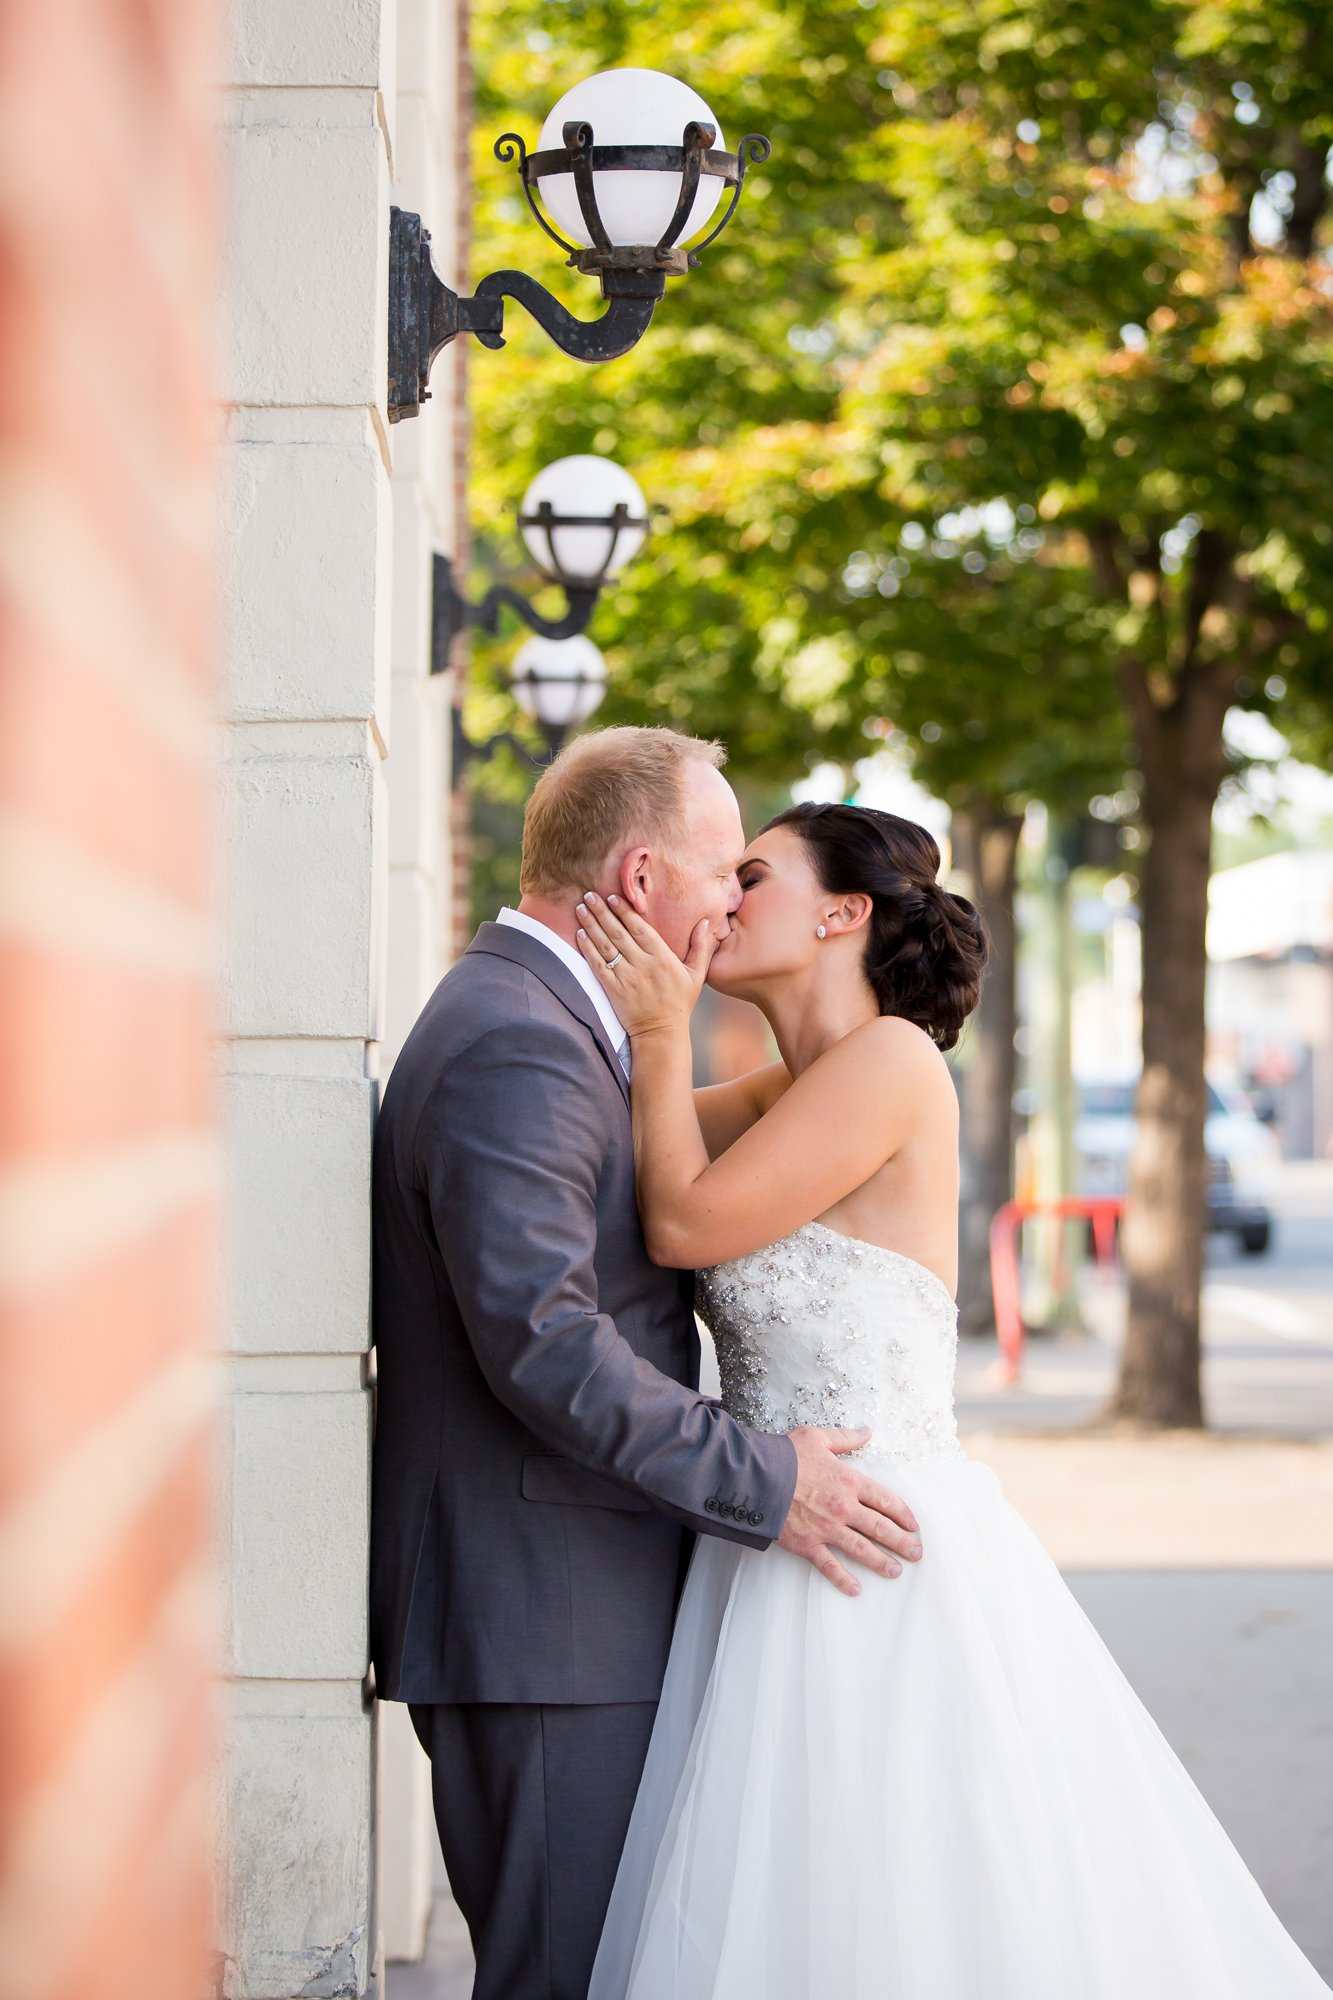 A bride and groom kissing against a brick wall